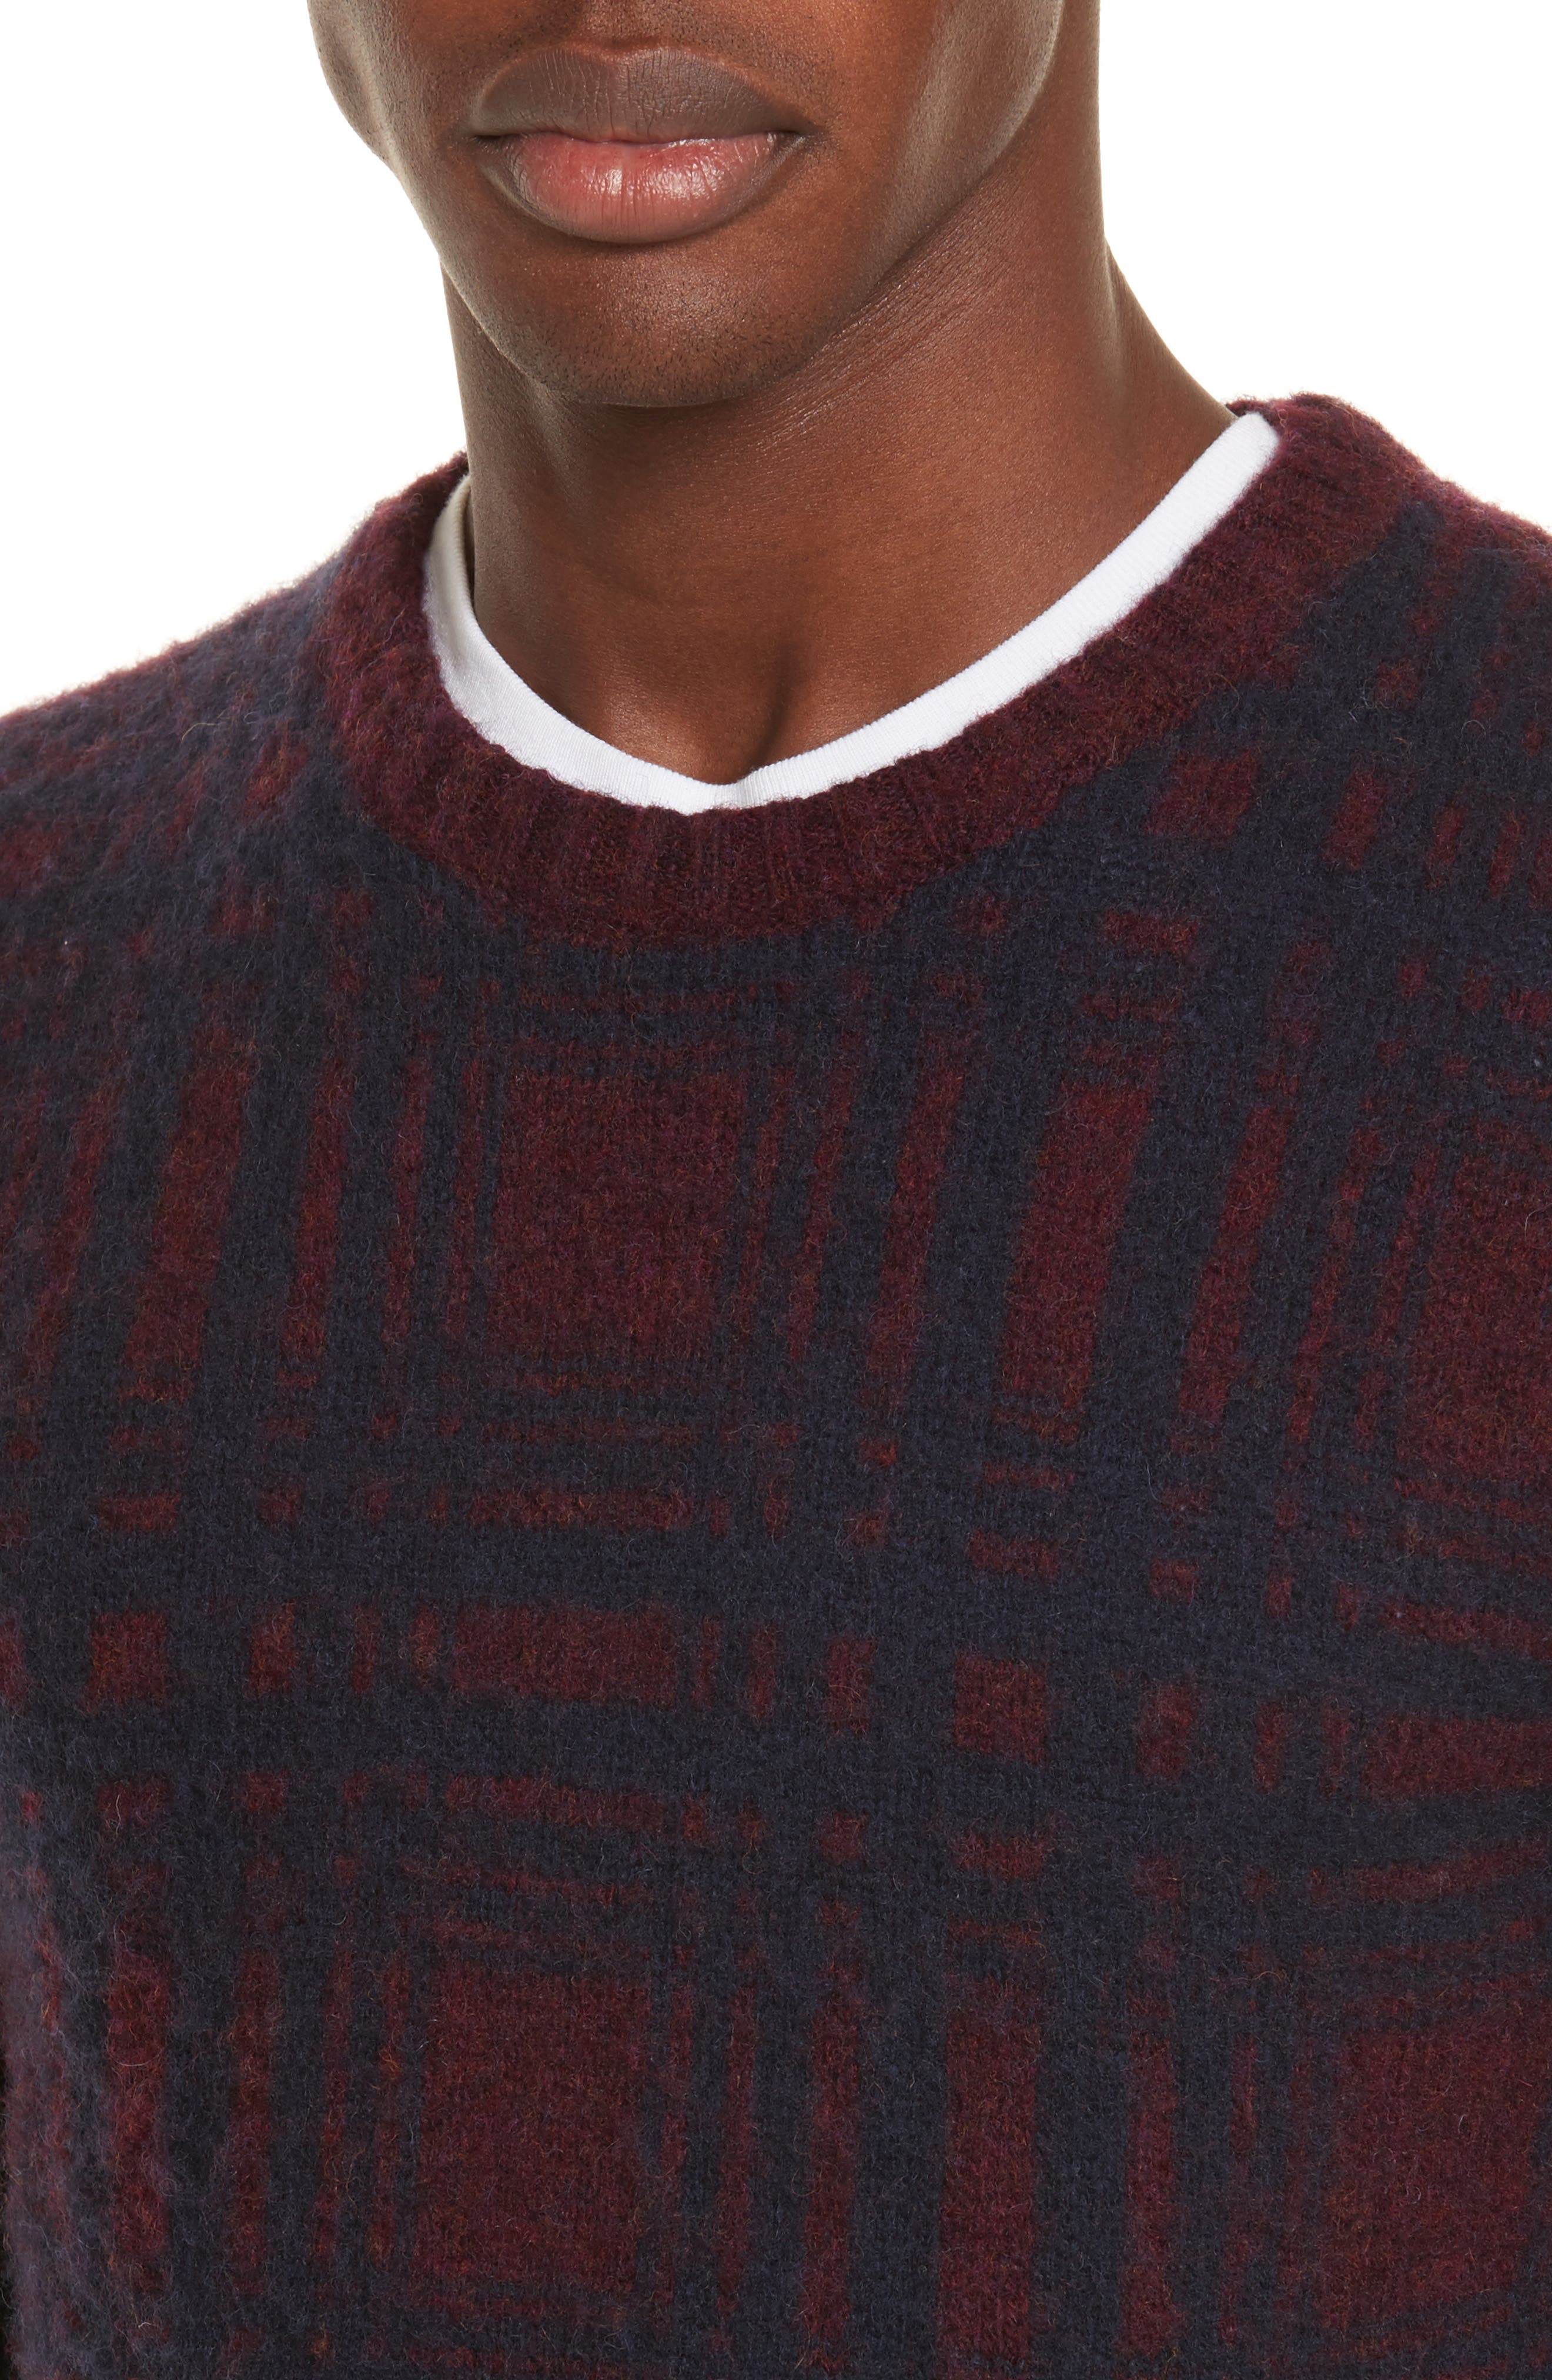 Sam Intarsia Check Wool Sweater,                             Alternate thumbnail 4, color,                             606